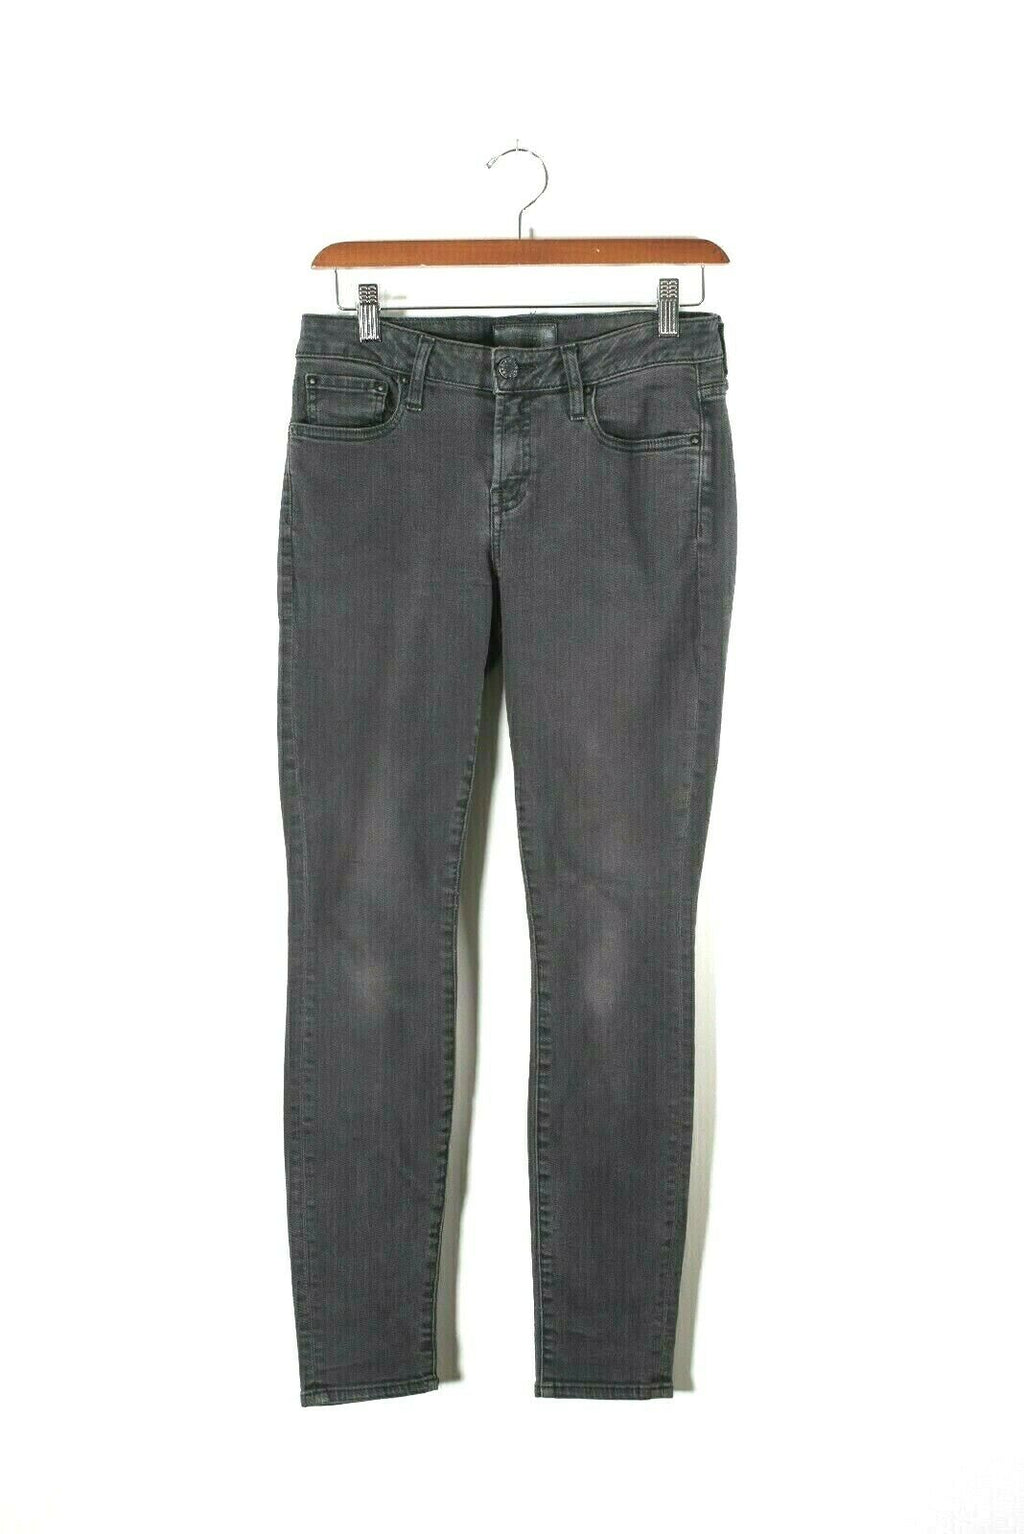 Aritzia The Castings Womens Size 27 Black Denim Pants Mid Rise Skinny Slim Jeans